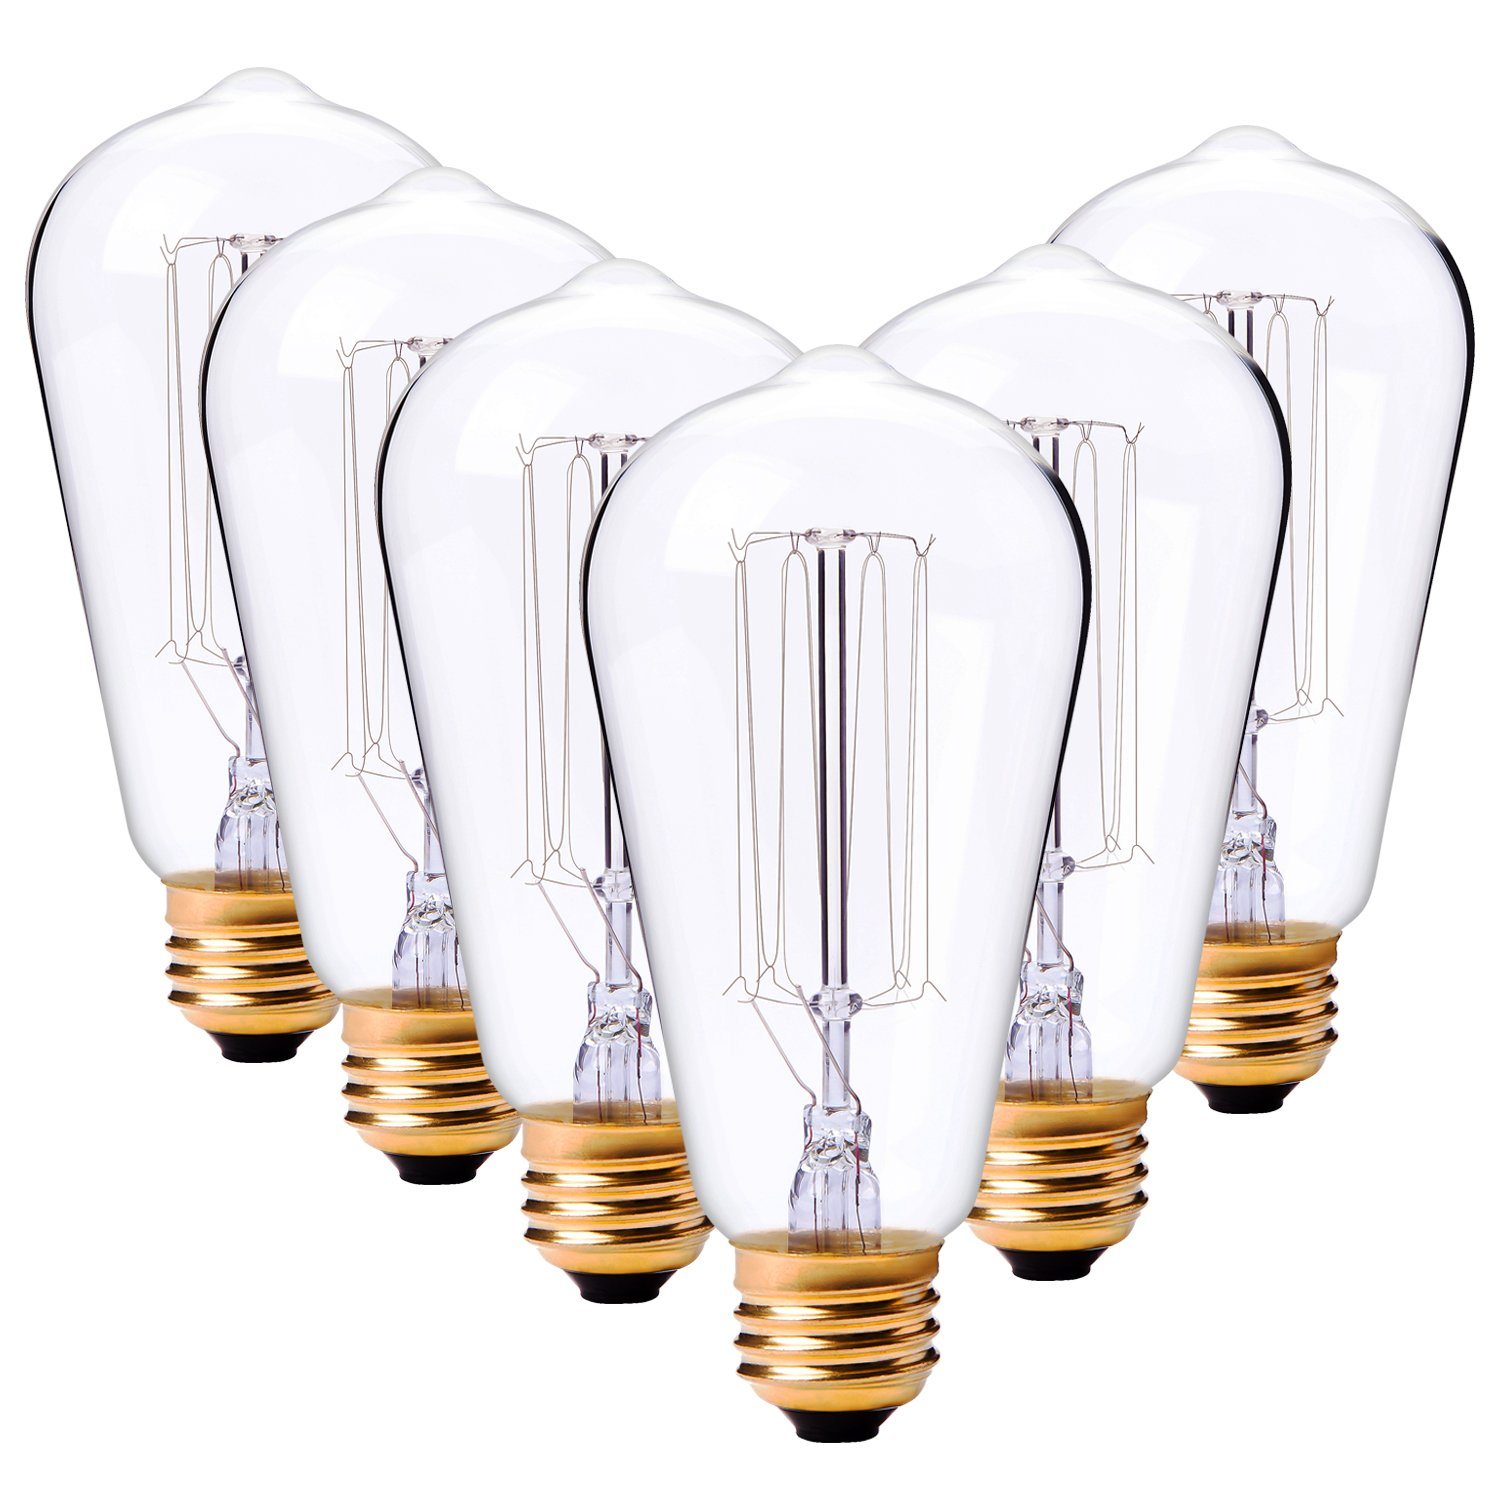 LDUSAHOME Vintage Edison Bulbs 60W Antique Classic Style Squirrel Cage Filament Incandescent Light Bulb E26 Base ST64 120V for Home Lighting Fixtures Lamp's Bulbs Warm Lighting Dim 2700K, 6 Pack